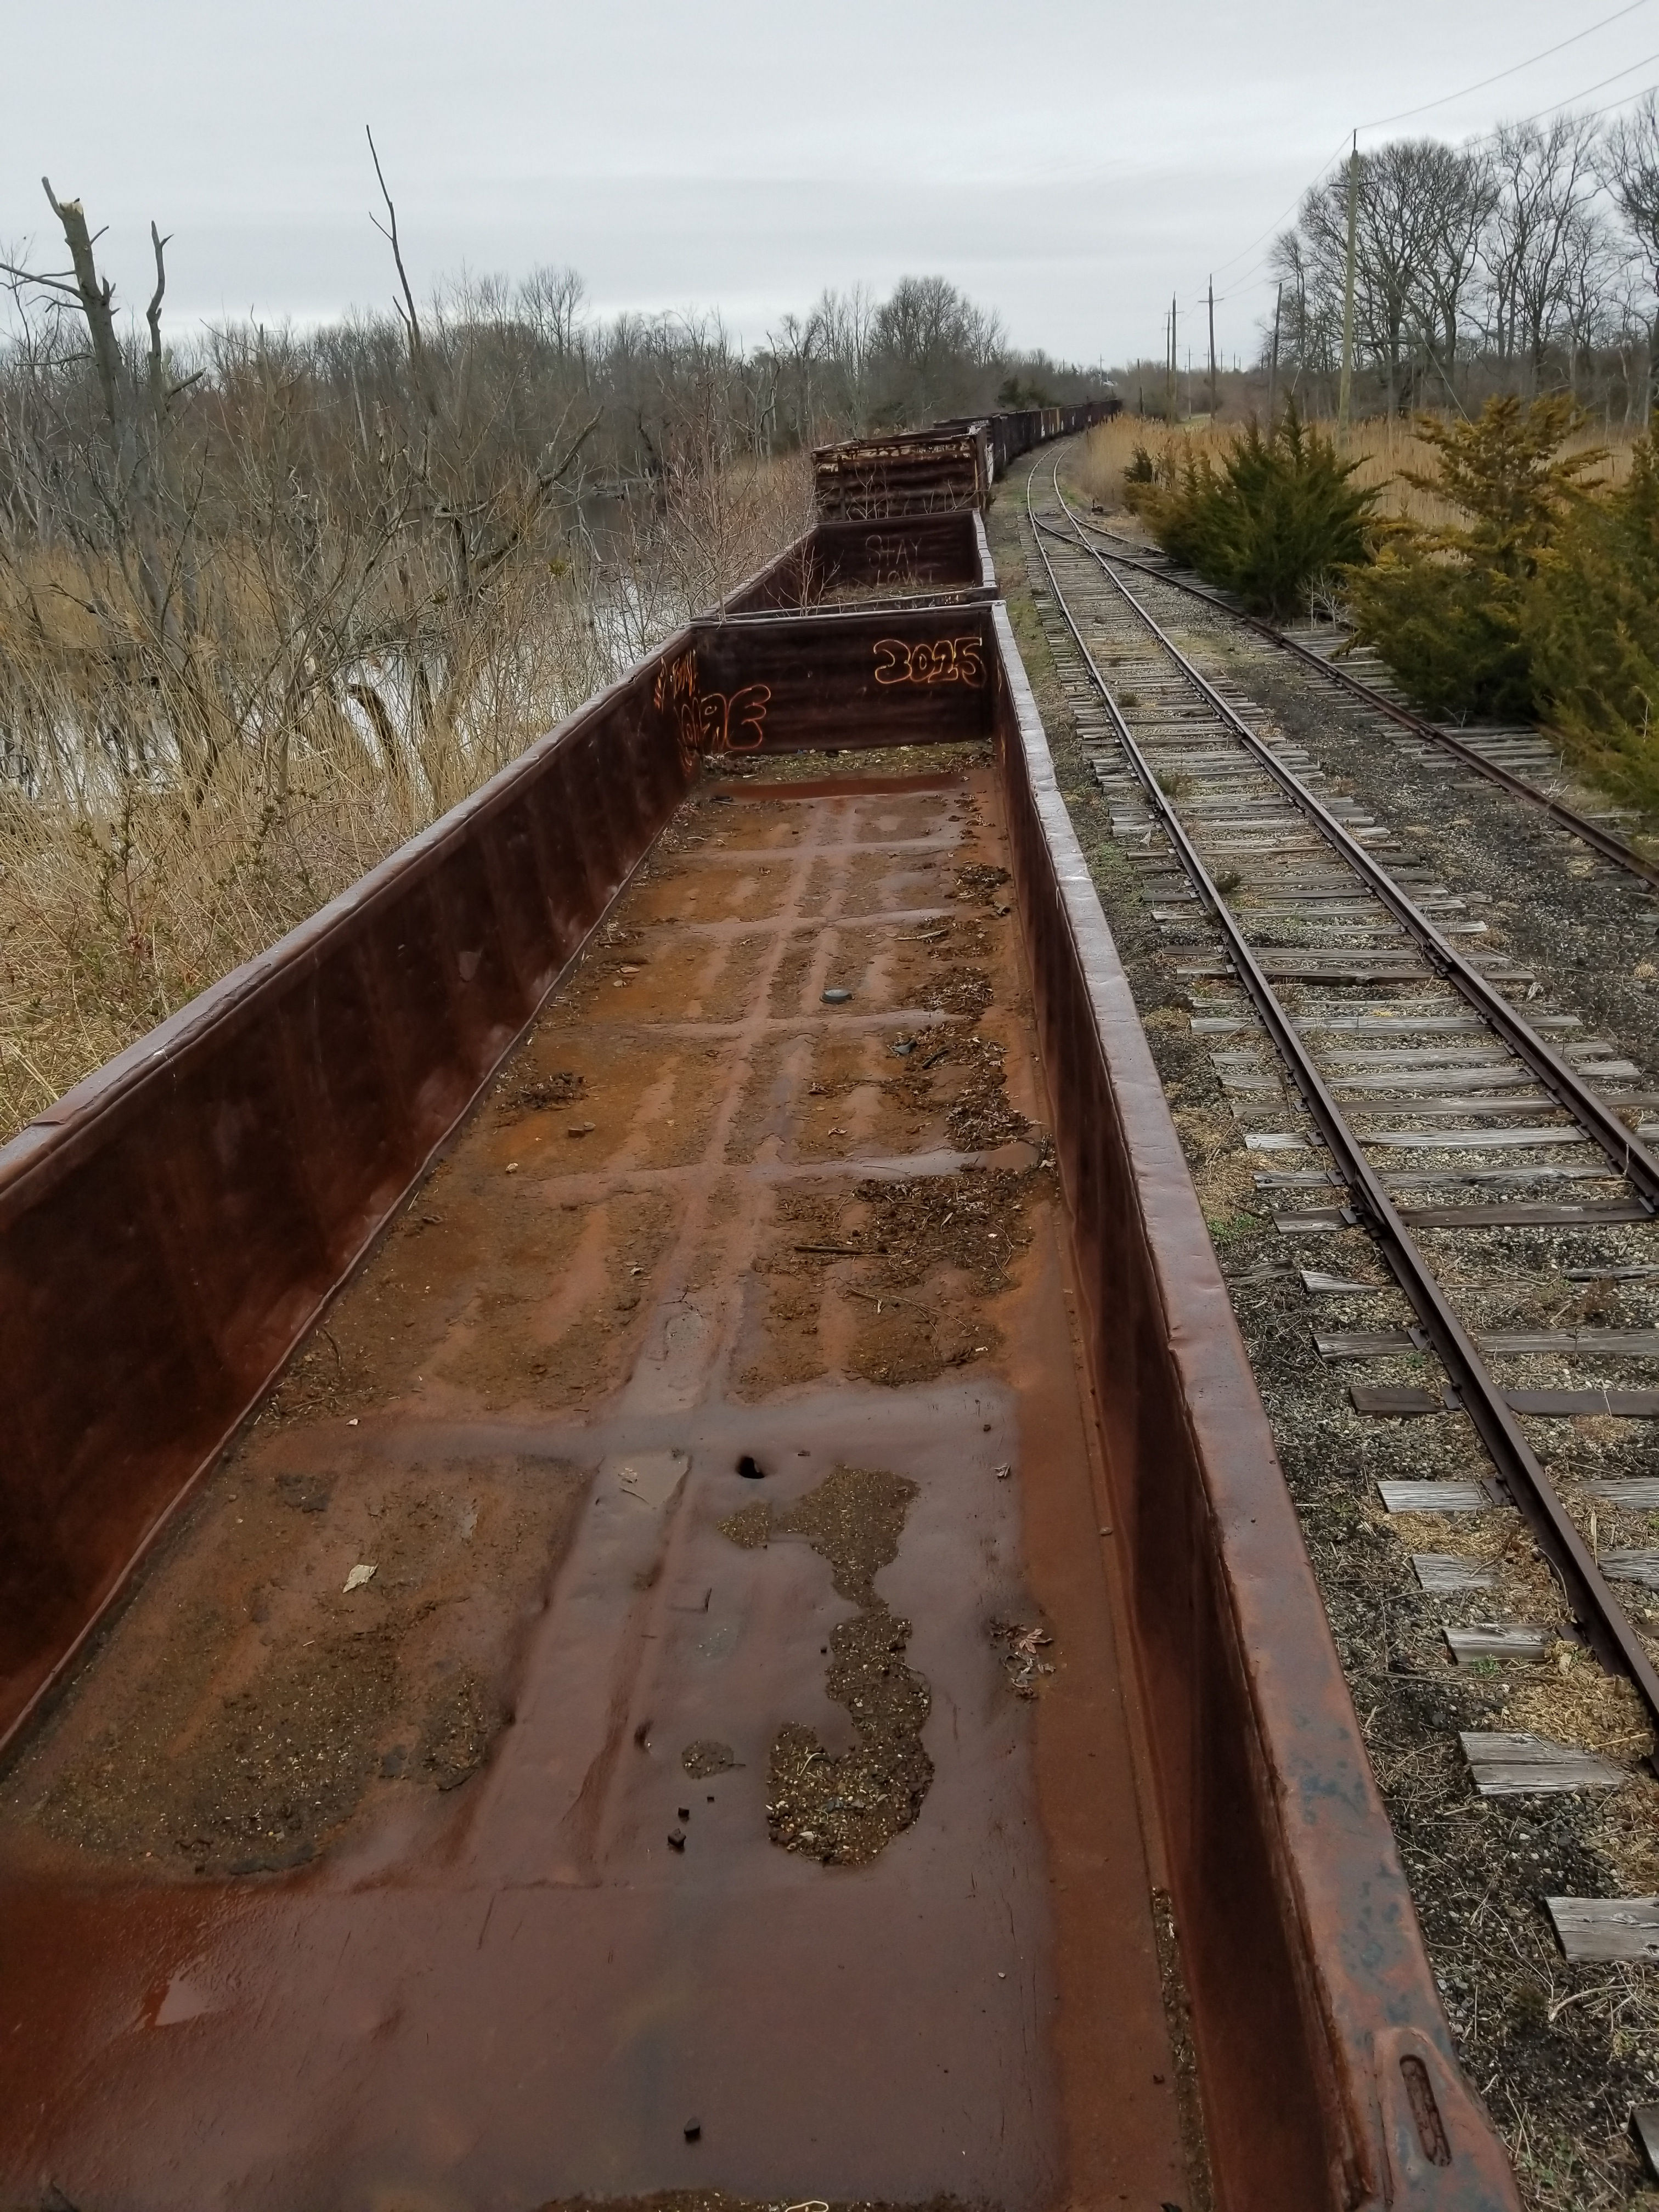 Lot 4 - LOT 4 - (X 3) EQUIPPED LOW SIDED GONDOLA RAIL CARS (CAPE MAY, NJ) (4-1) SRXX 2014 EQUIPPED LOW-SIDED